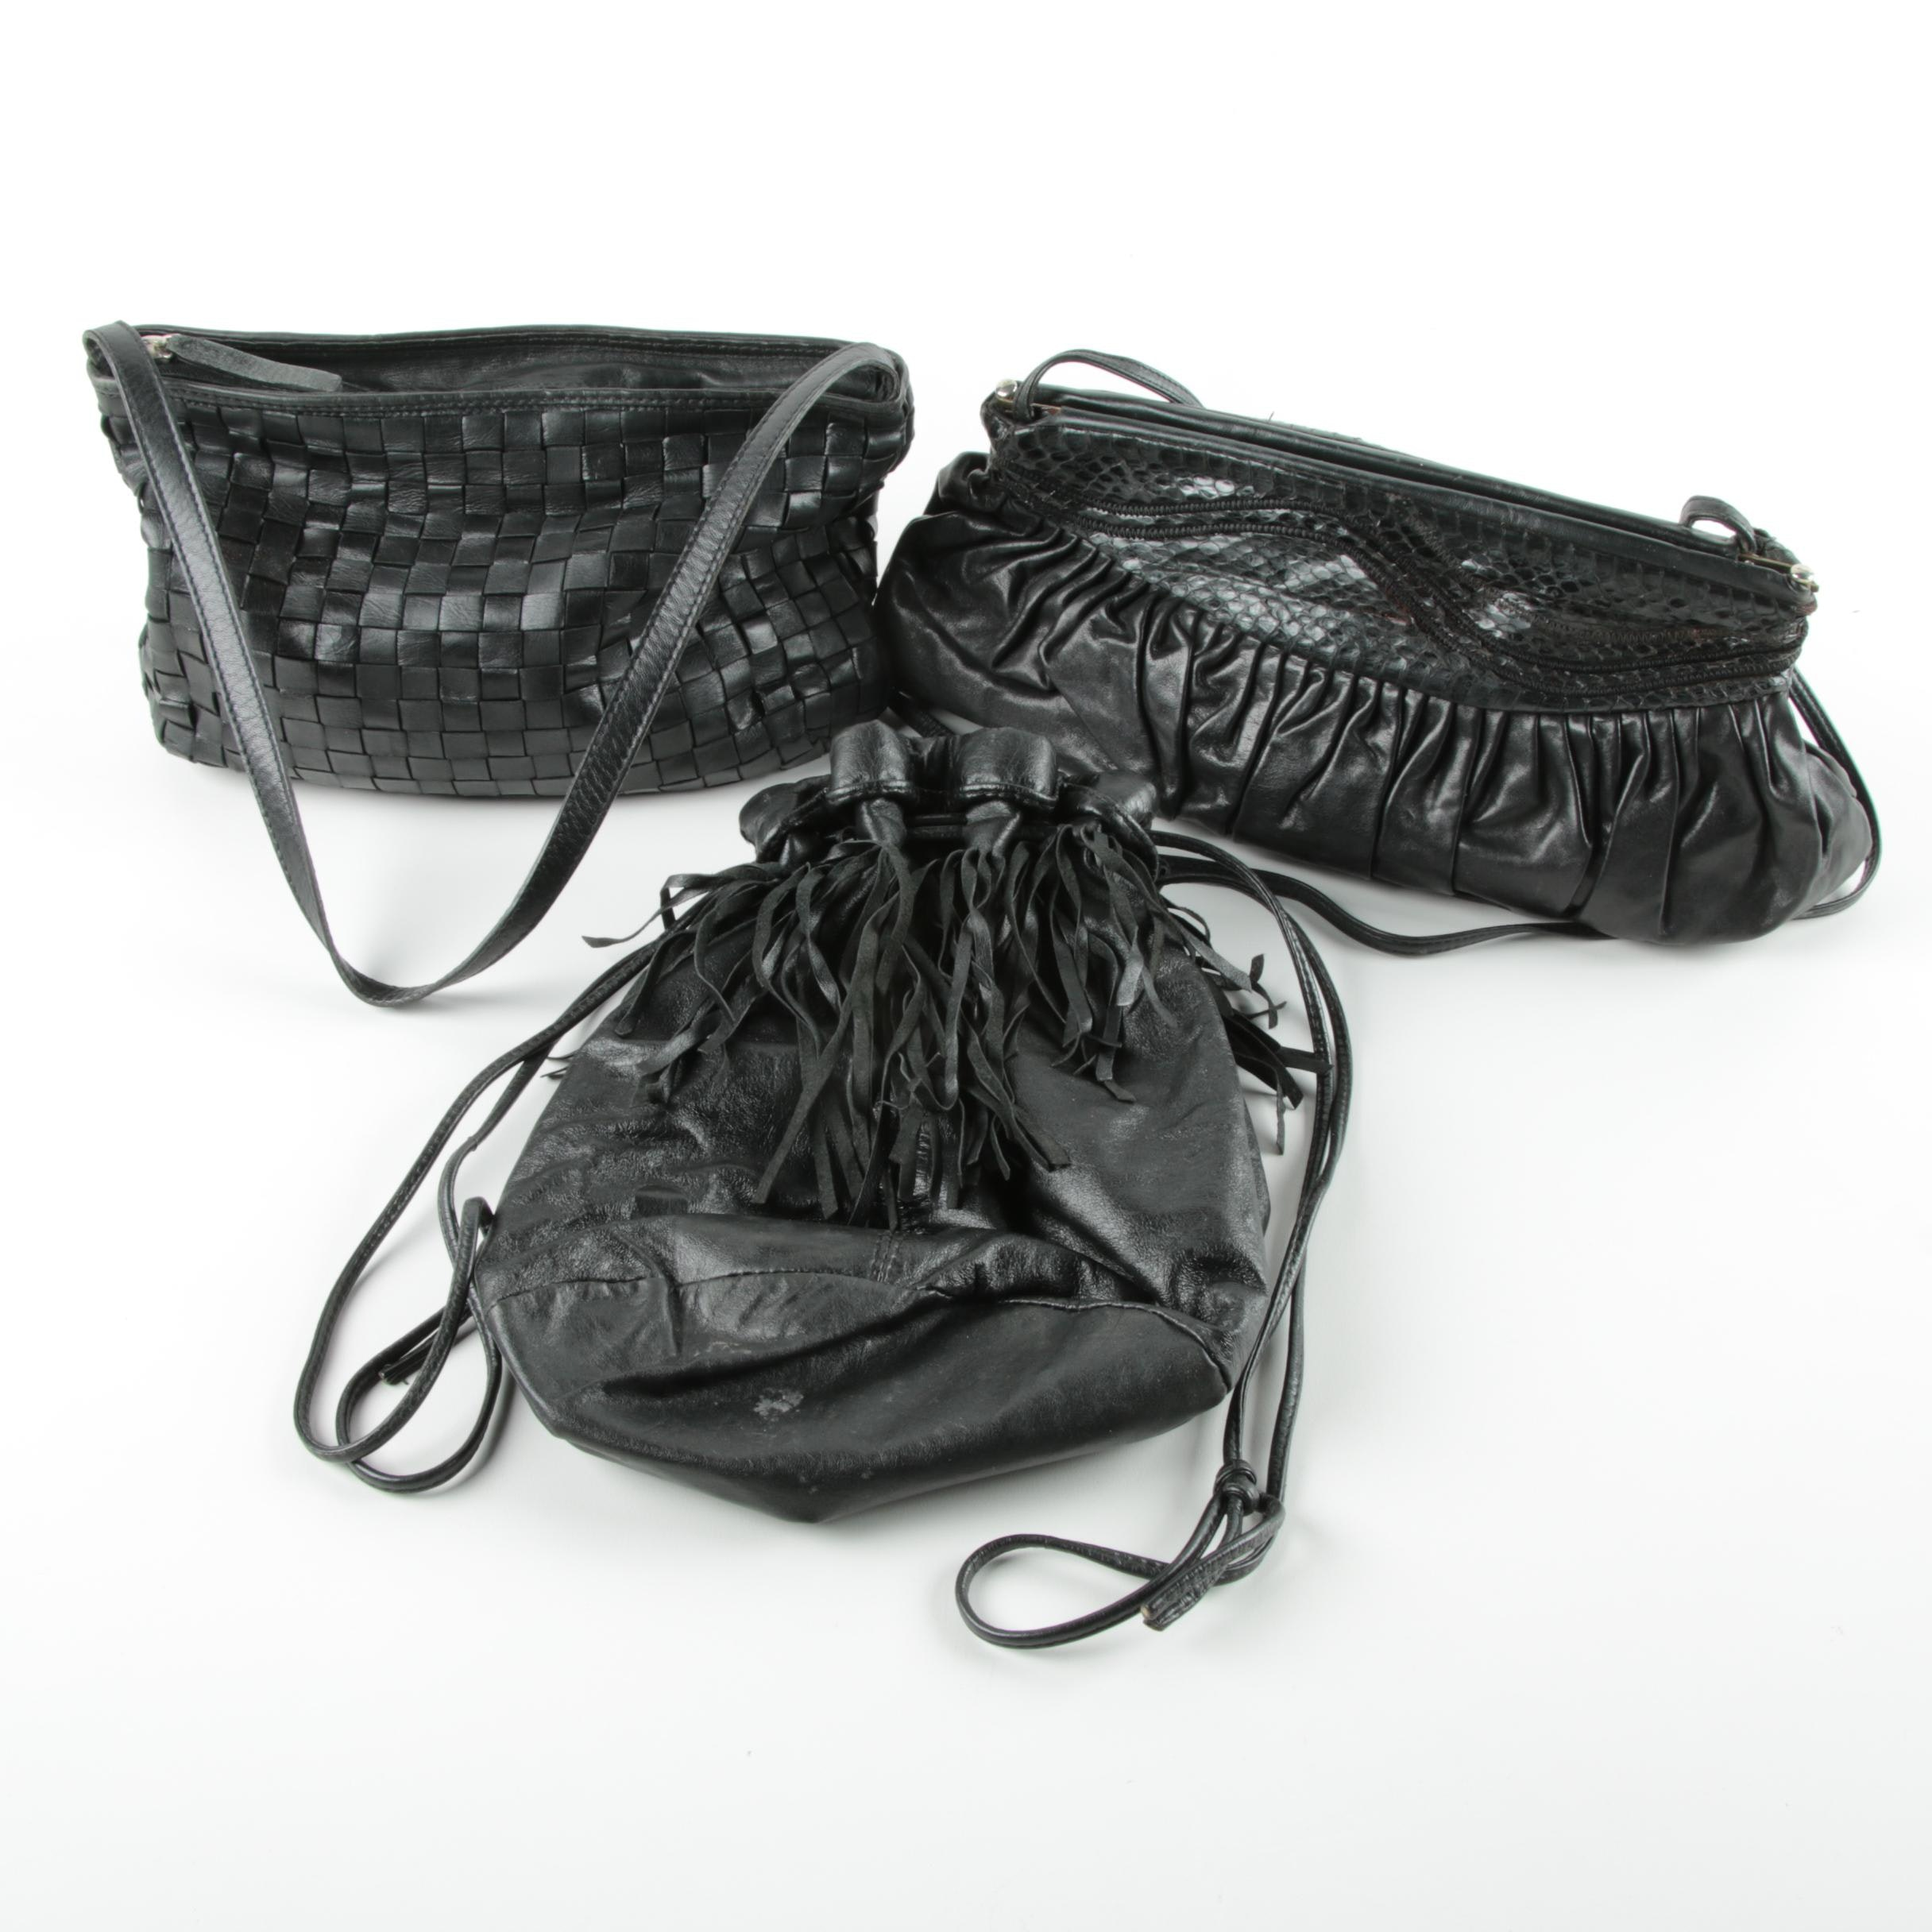 Black Leather and Snakeskin Handbags Including Desmo